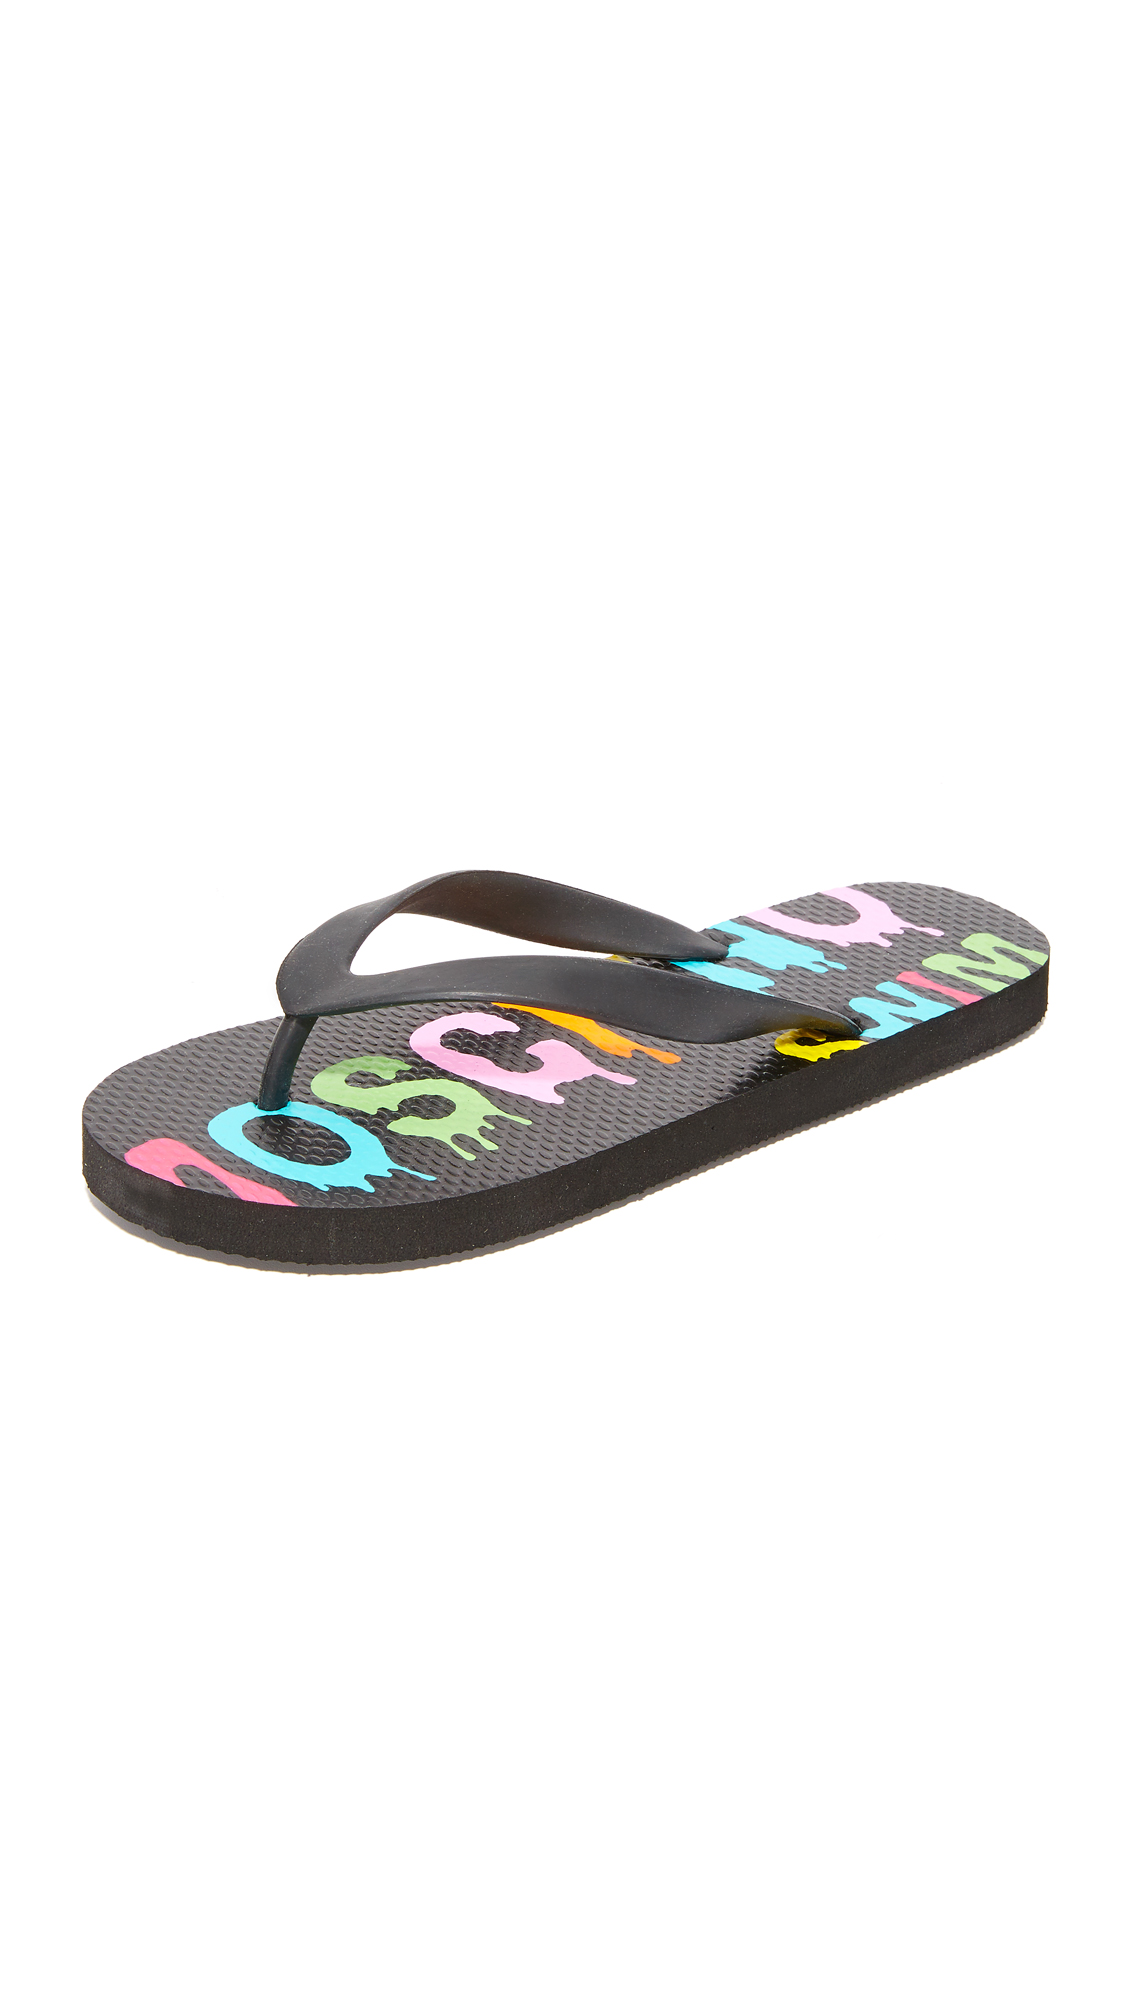 Moschino Moschino Flip Flops - Black at Shopbop